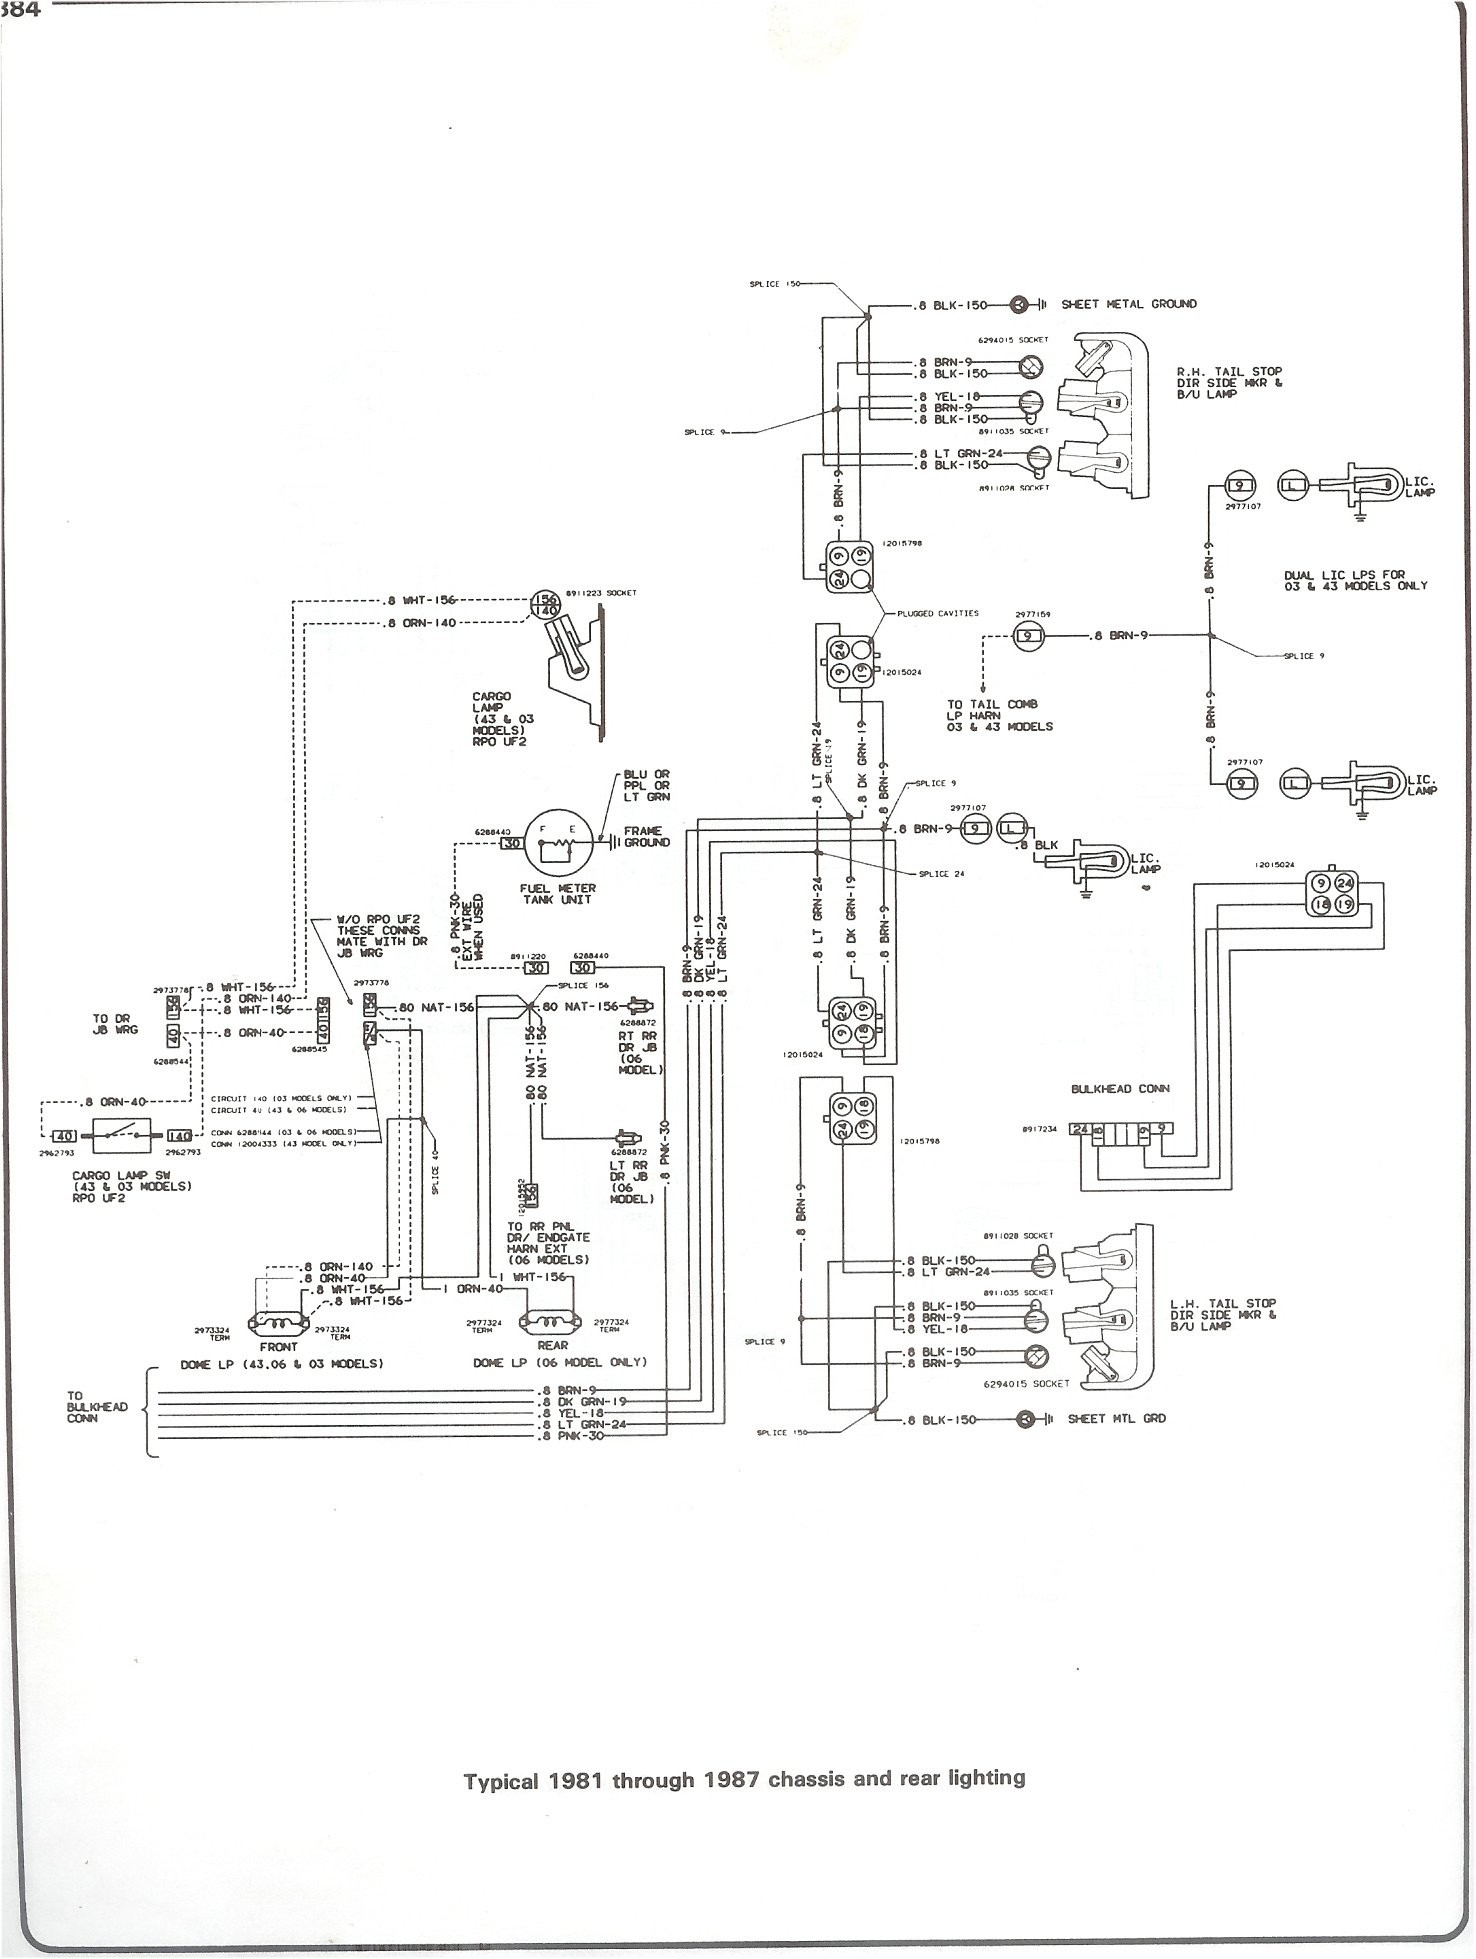 1982 Chevy C10 Wiring Diagram Air Conditioning - Wiring ... on